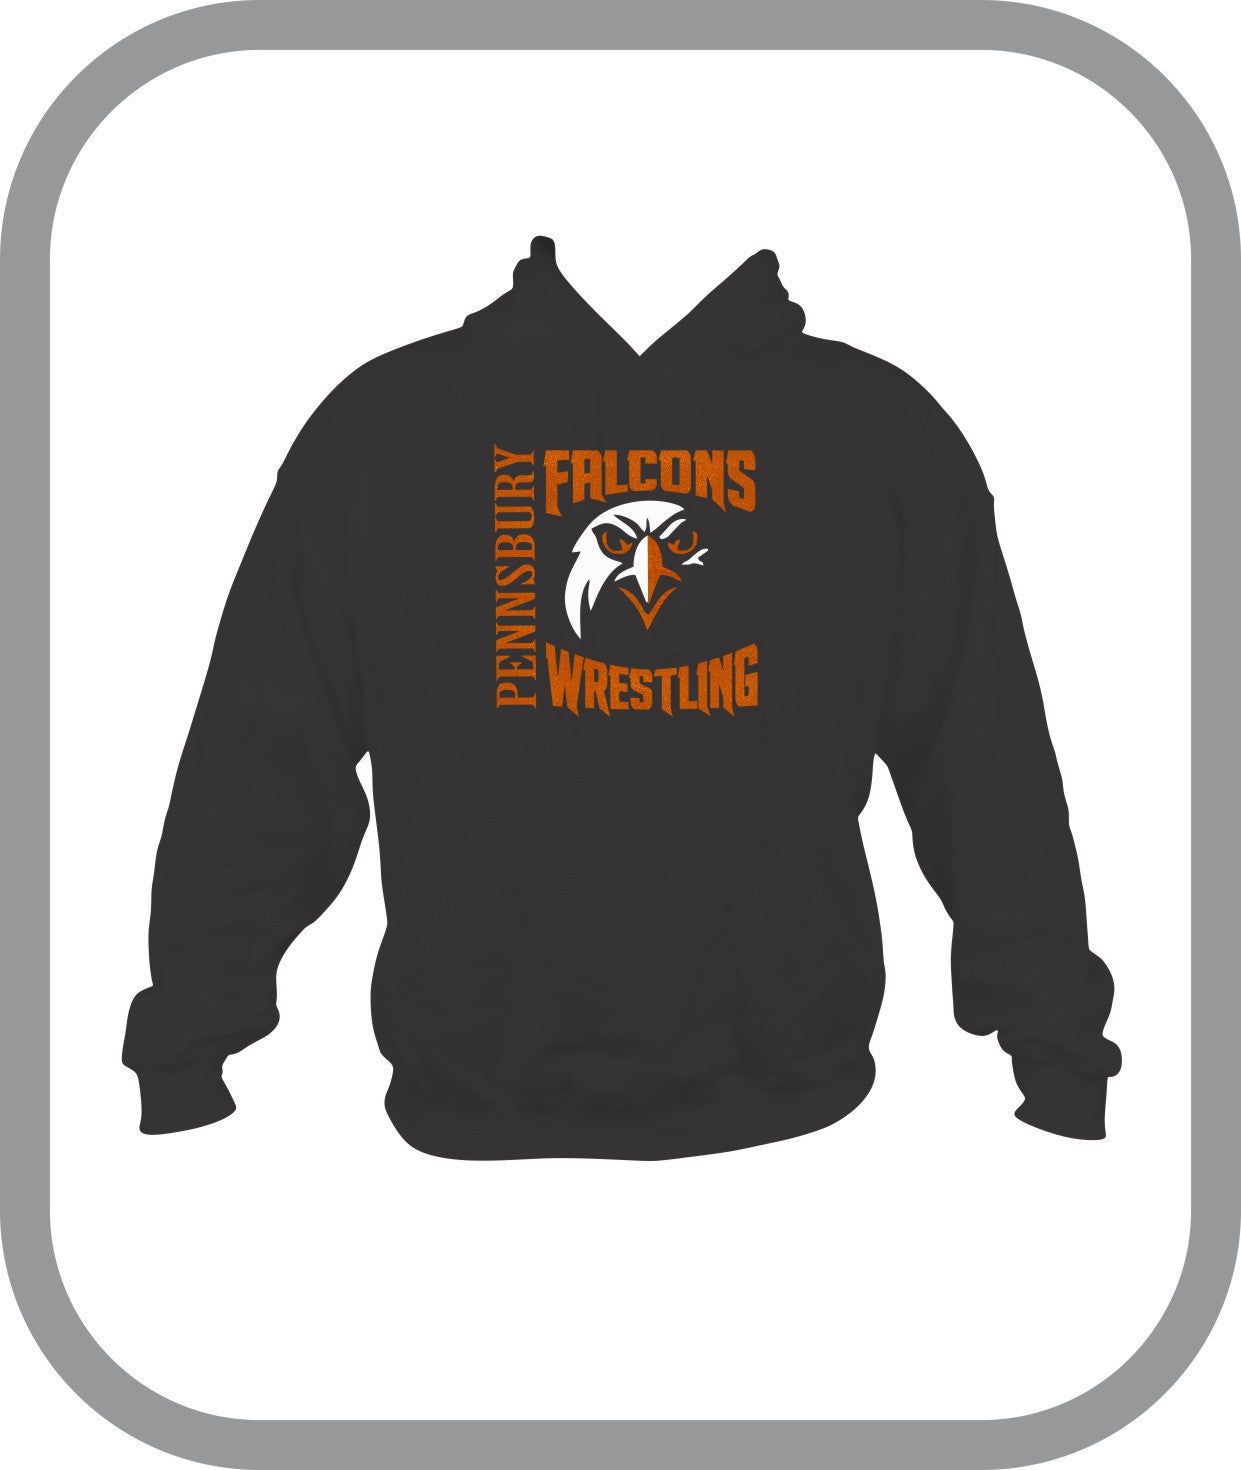 Falcons Wrestling - Mens Pullover Hoodies with choice of design